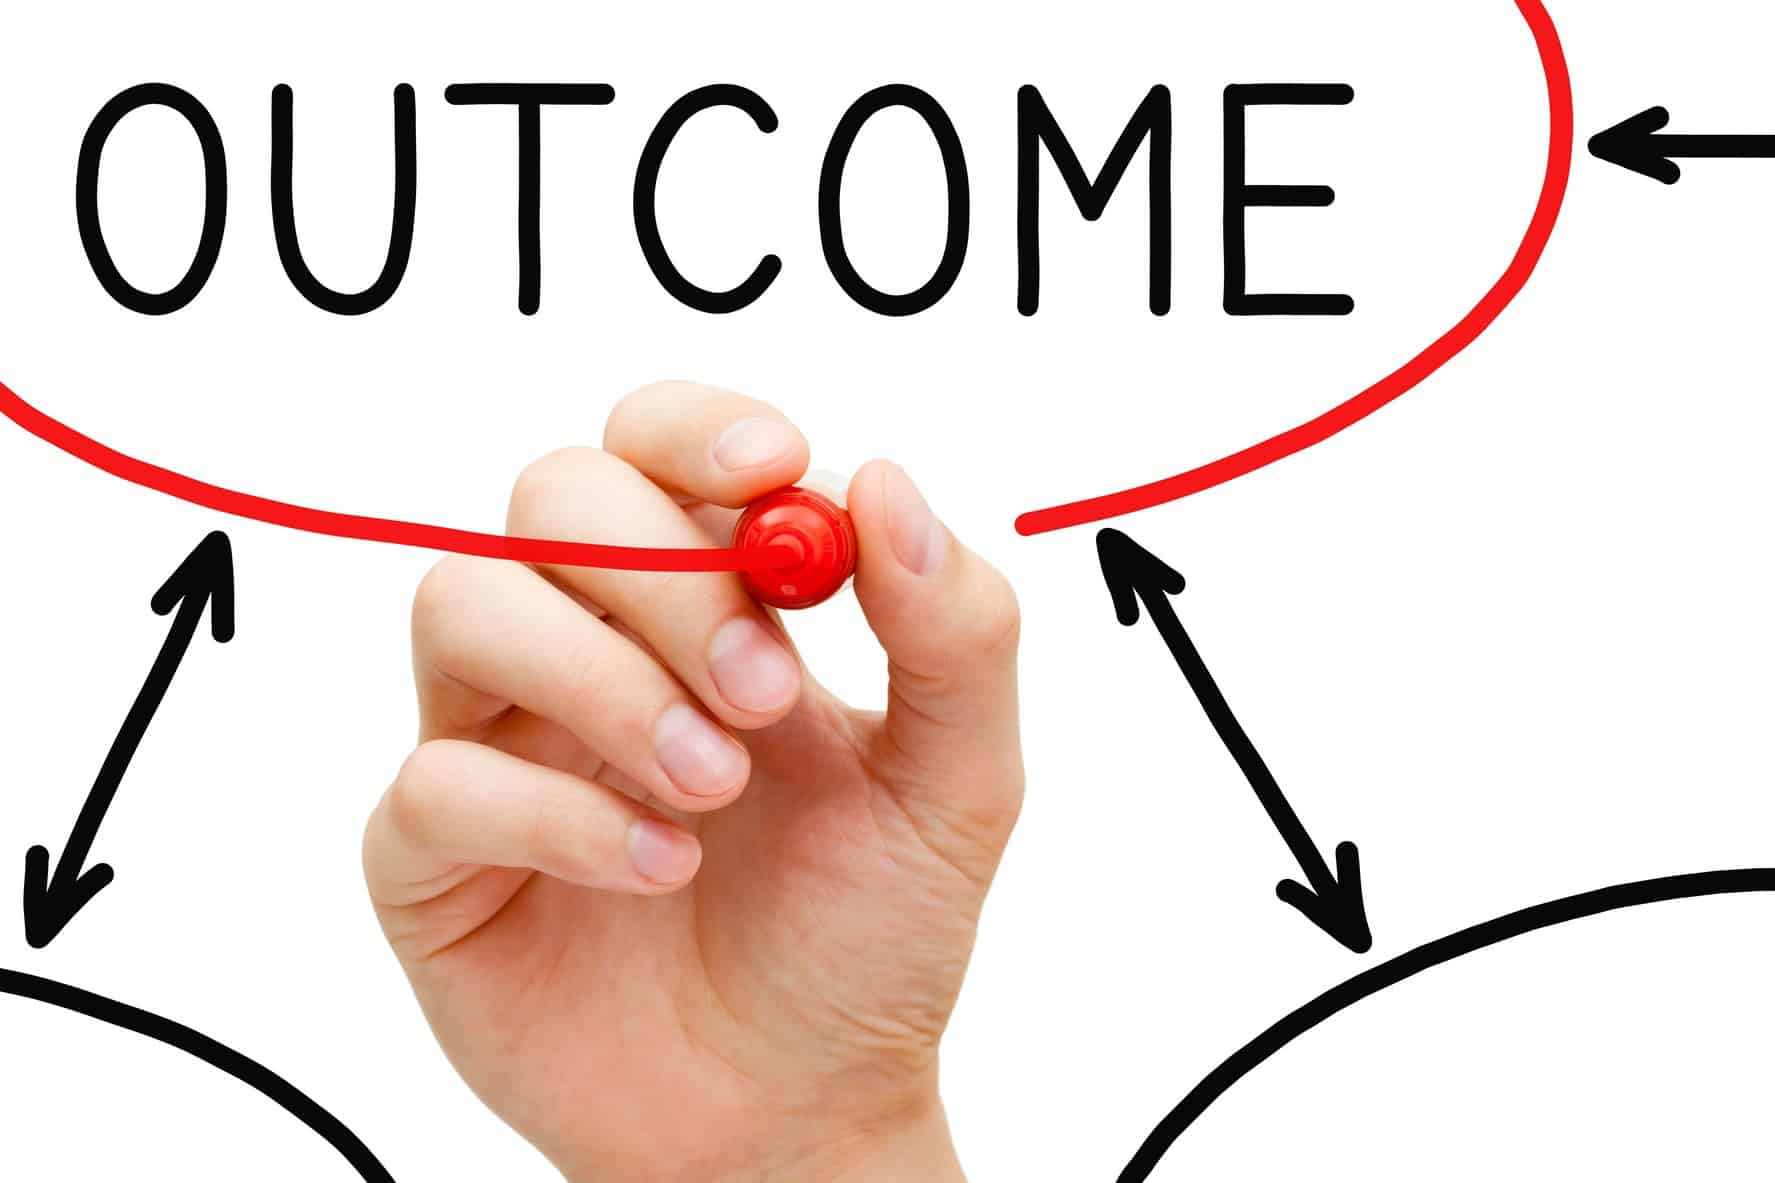 Are You Chasing Leads or Customer Outcomes?